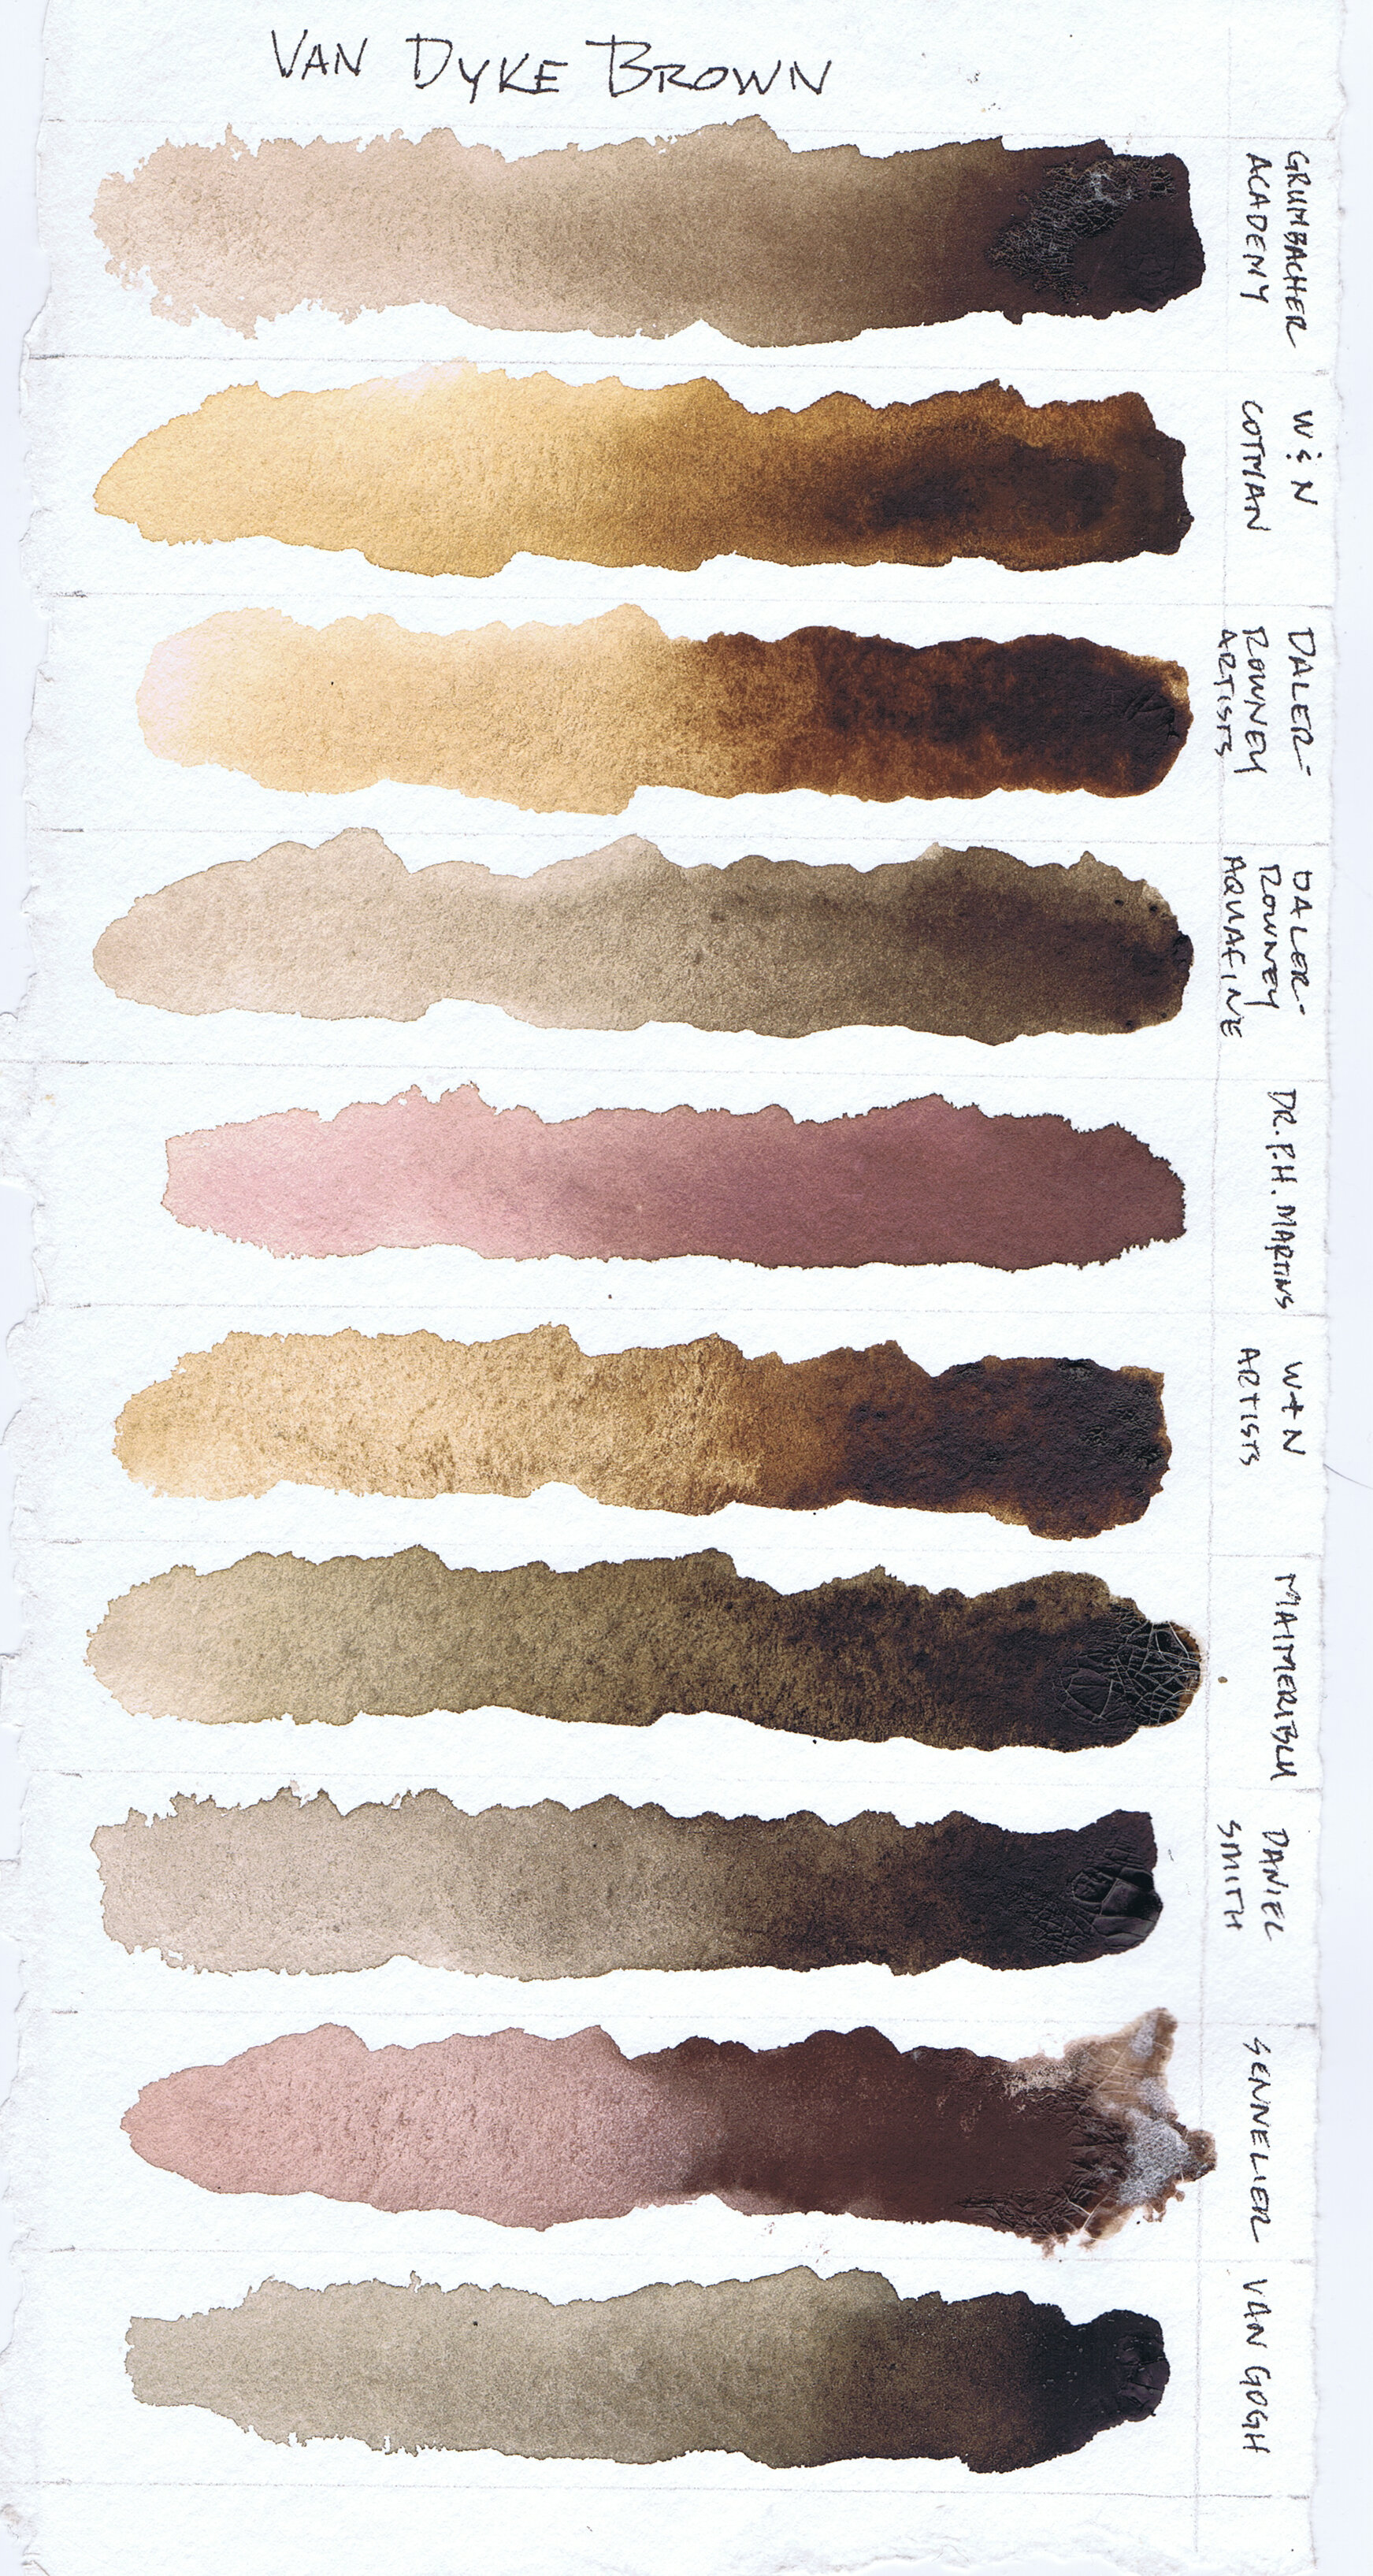 Chart of Van Dyke brown watercolors from 10 different manufacturers